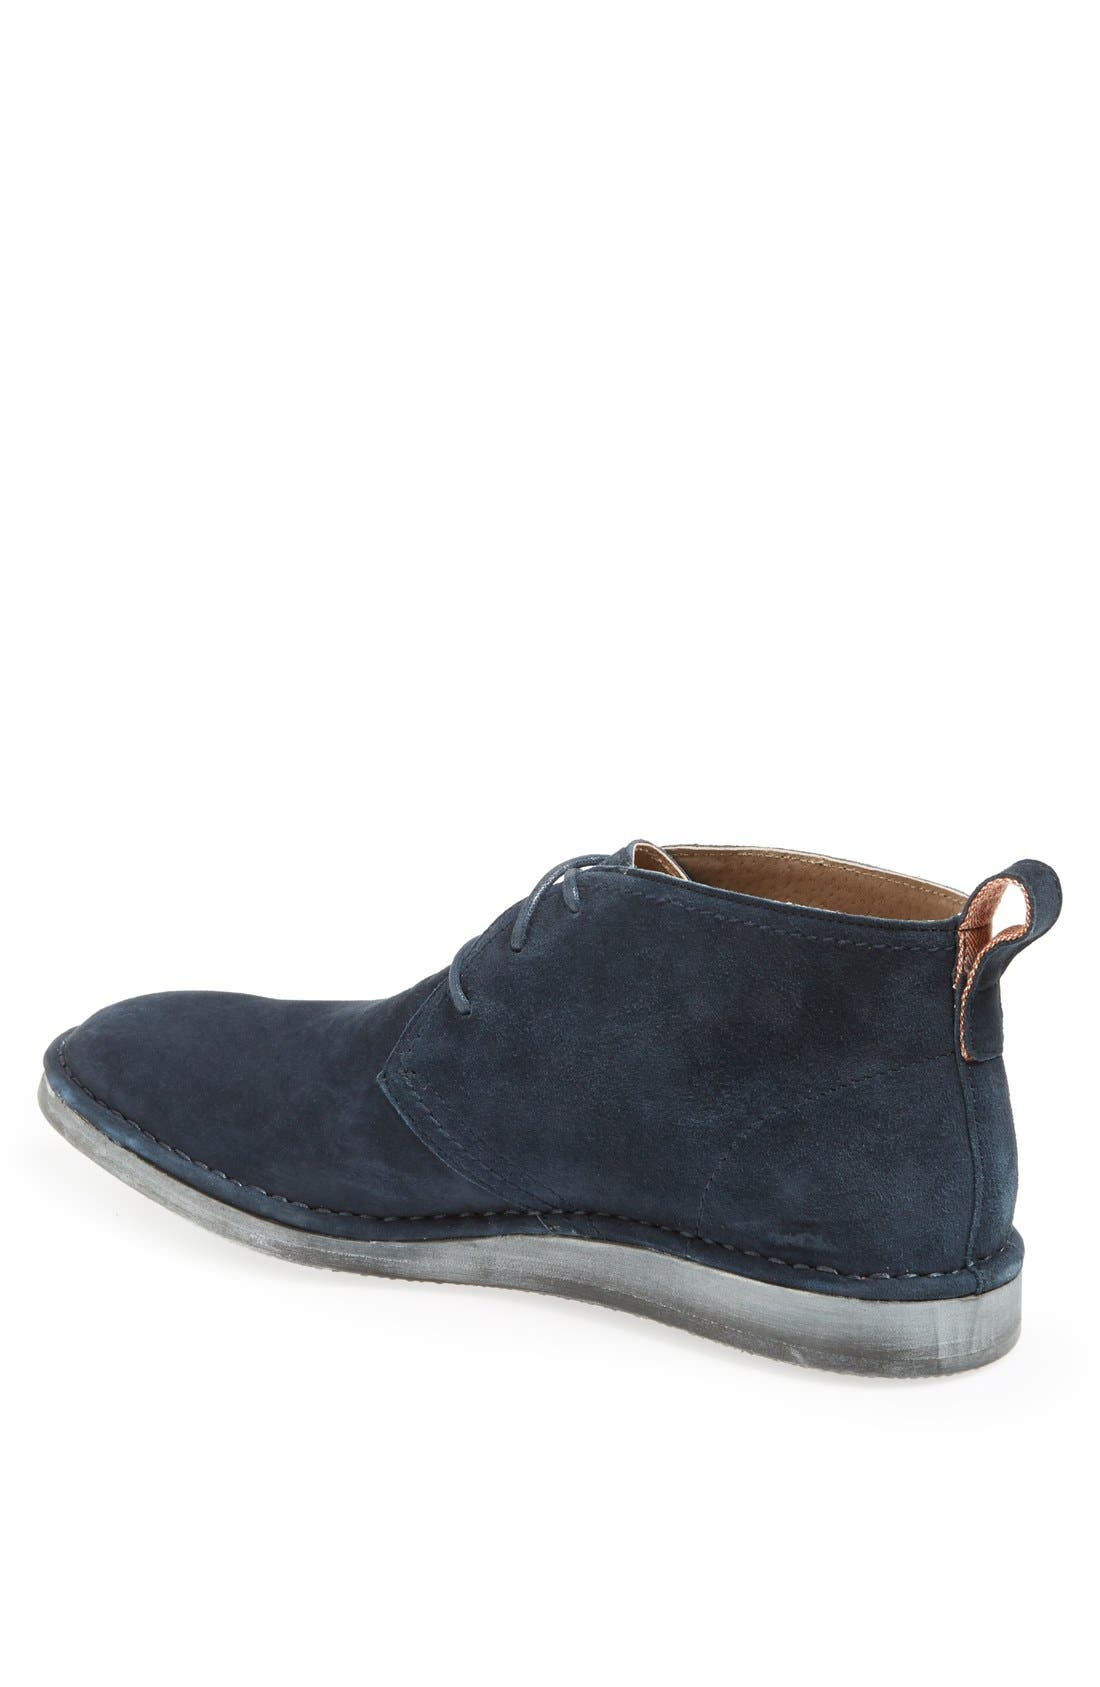 Alternate Image 2  - Andrew Marc 'Parkchester' Chukka Boot (Men)